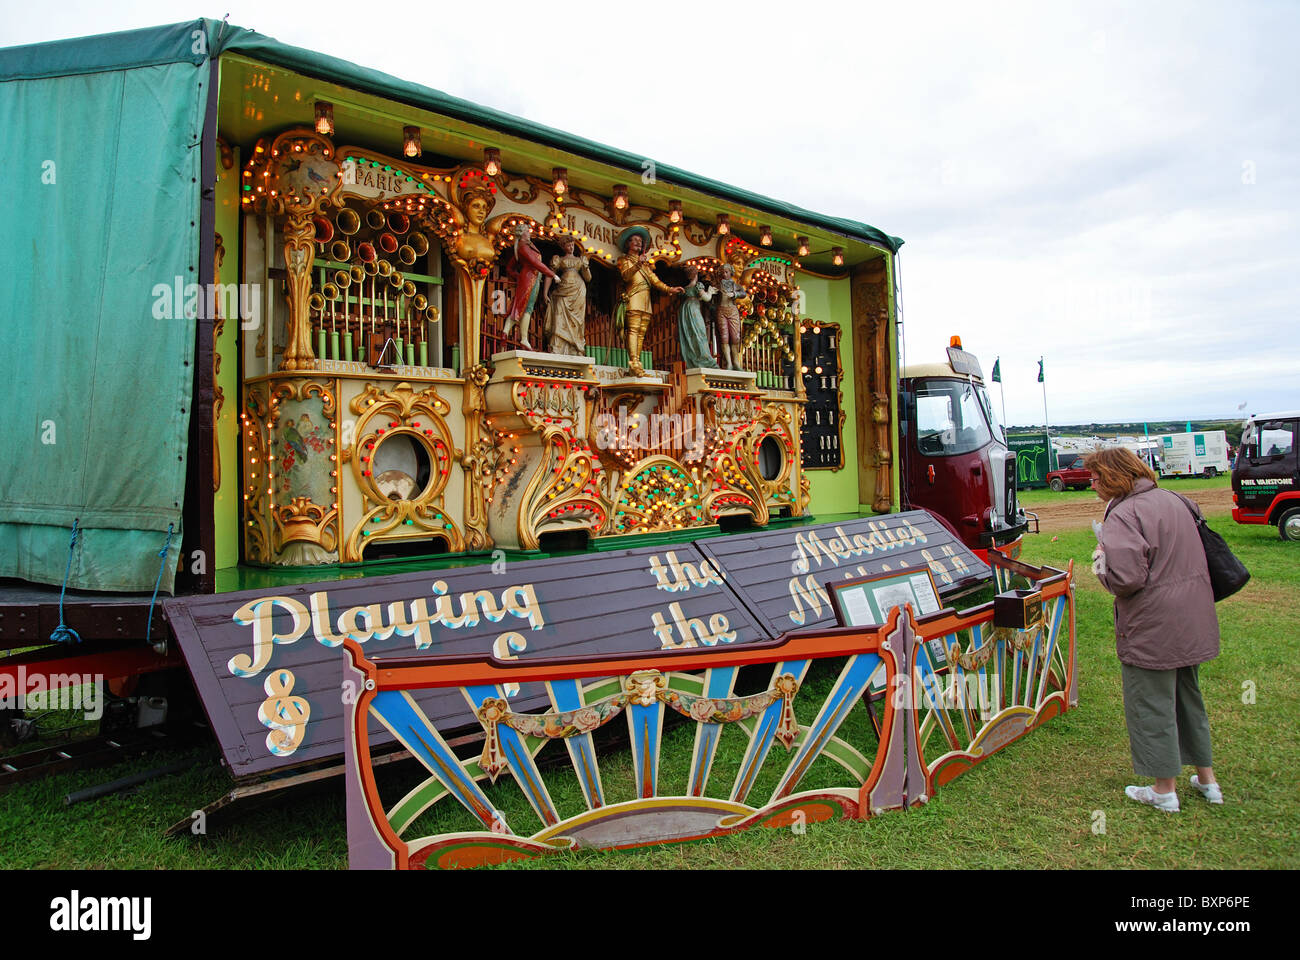 a large traveling musical organ at a country fair in wiltshire, uk - Stock Image